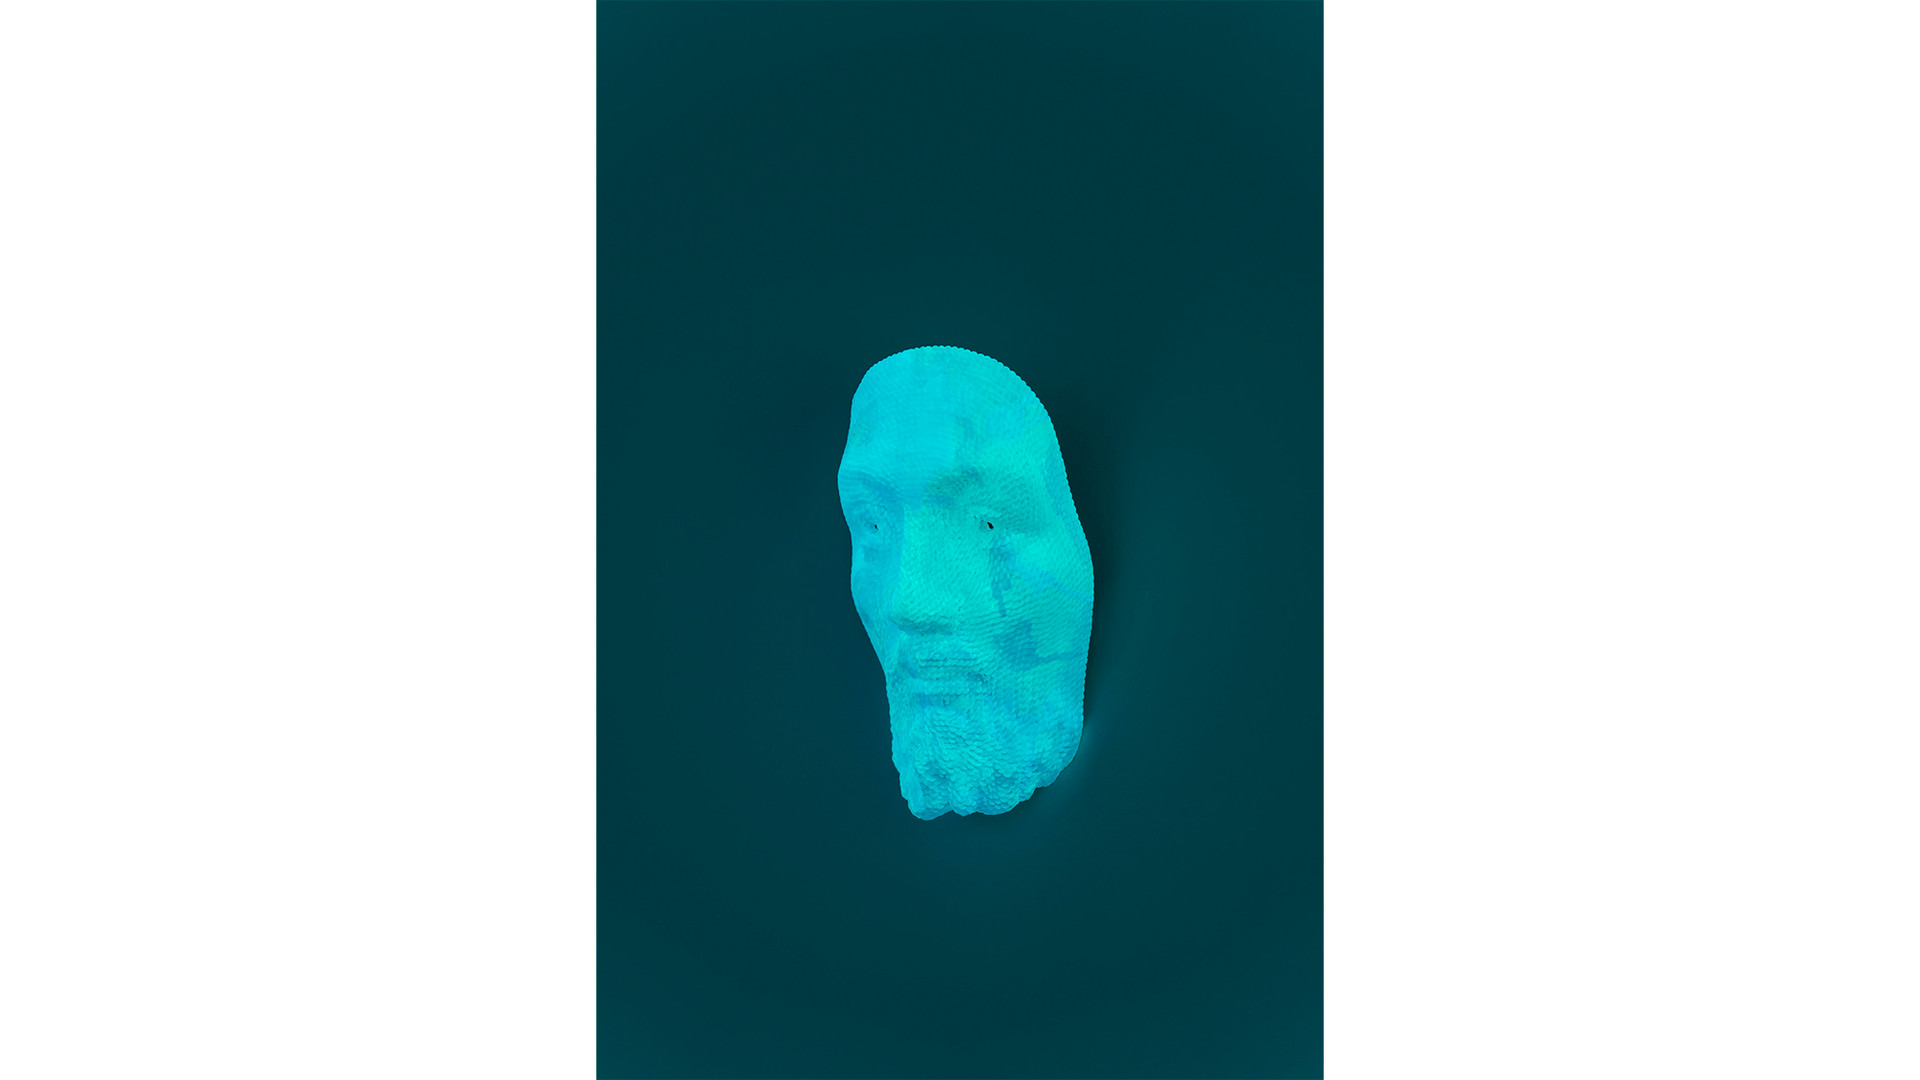 Jesus Mask, 2020, acrylic & phosphorescent pigment on the work of sequins on polyester resin & fiberglass, 31 x 18 x 11 cm